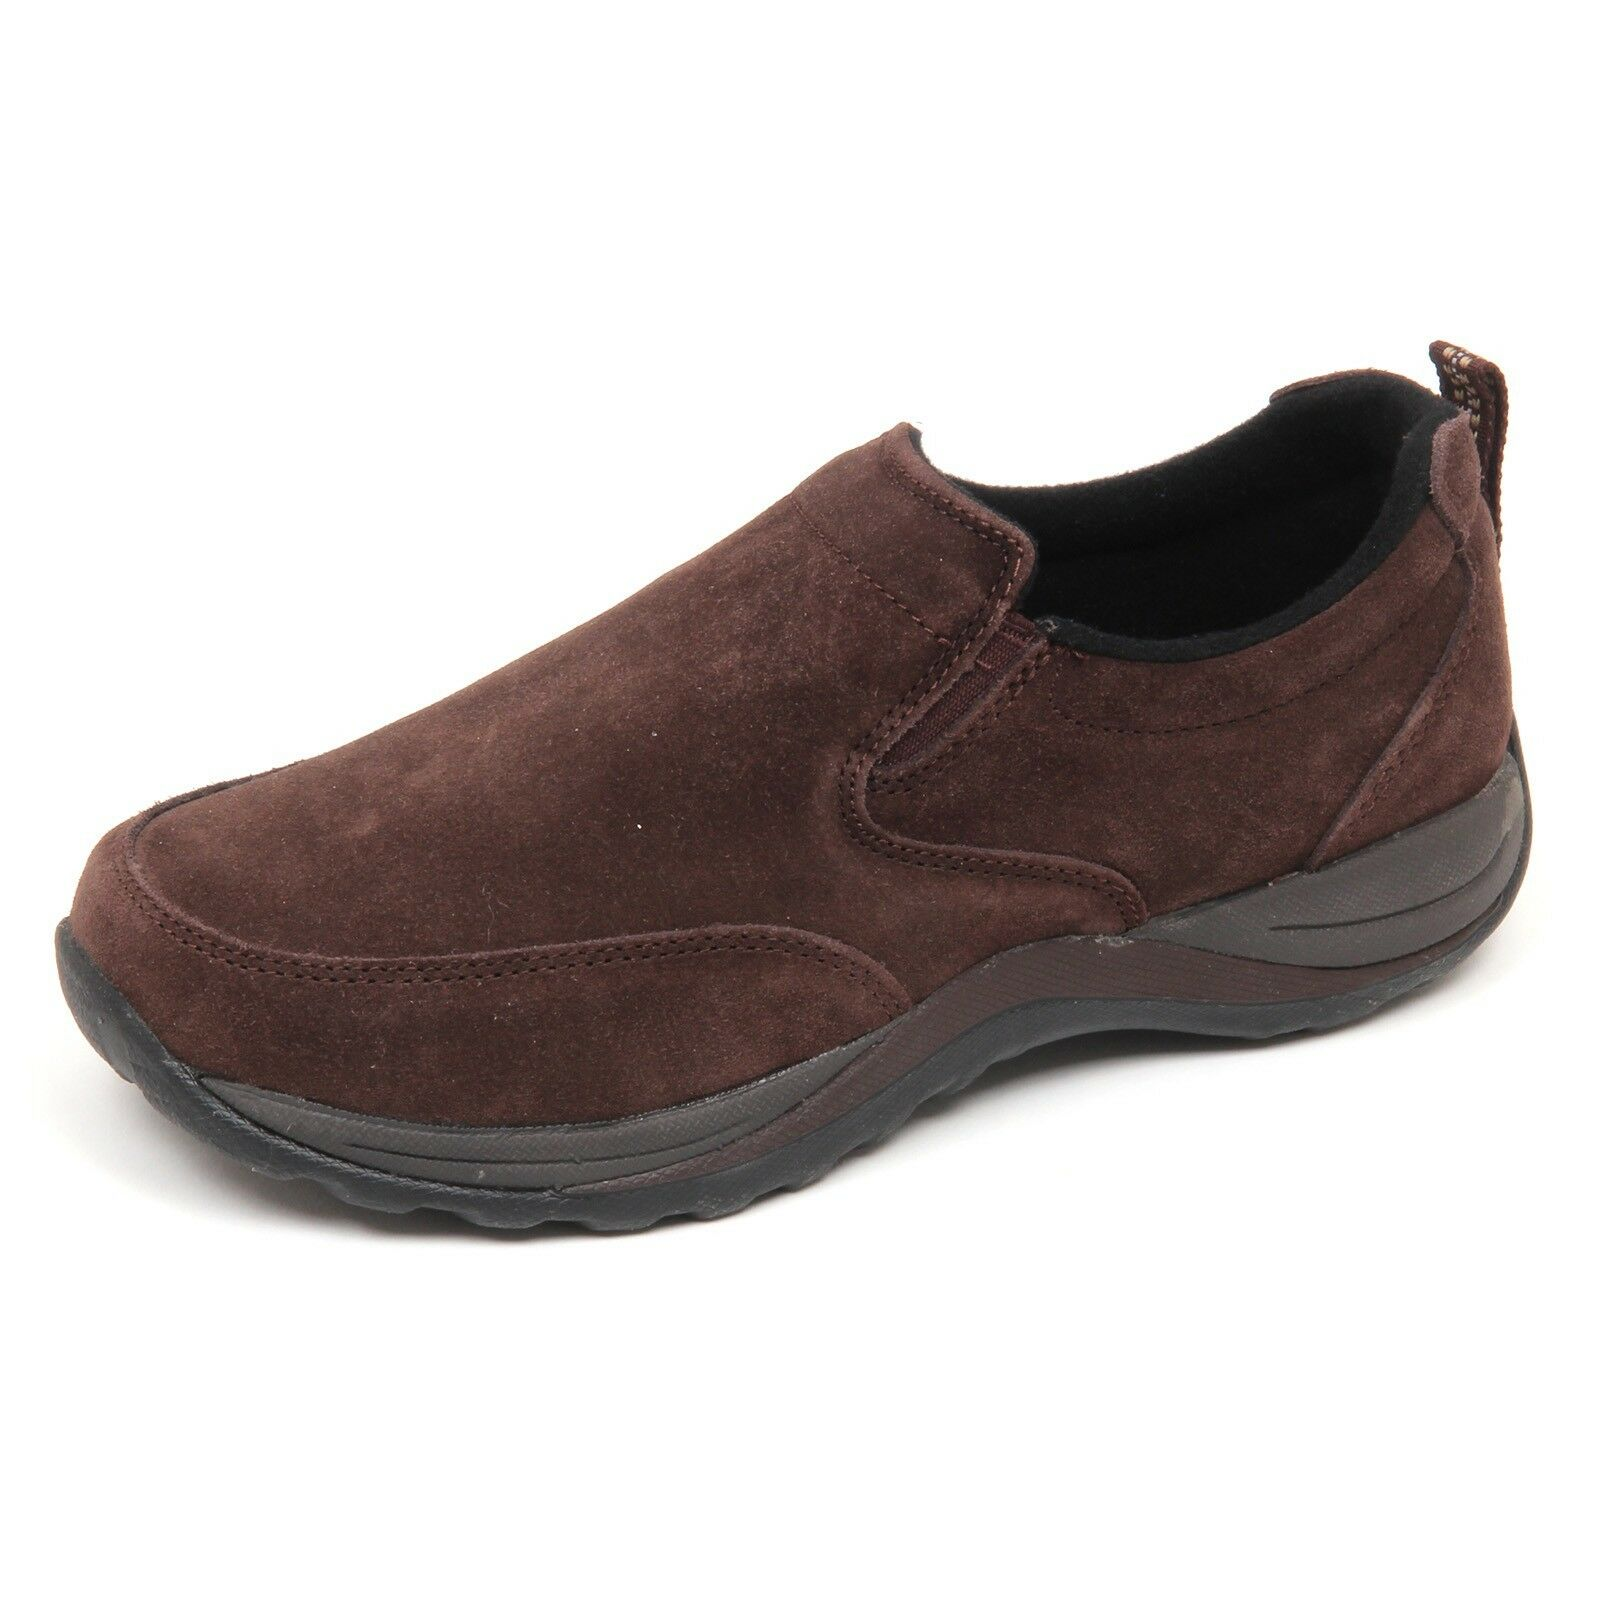 D5020 zapatos hombre on L.L.BEAN WITHOUT BOX suede Marrón slip on hombre zapatos hombre a3ffcd